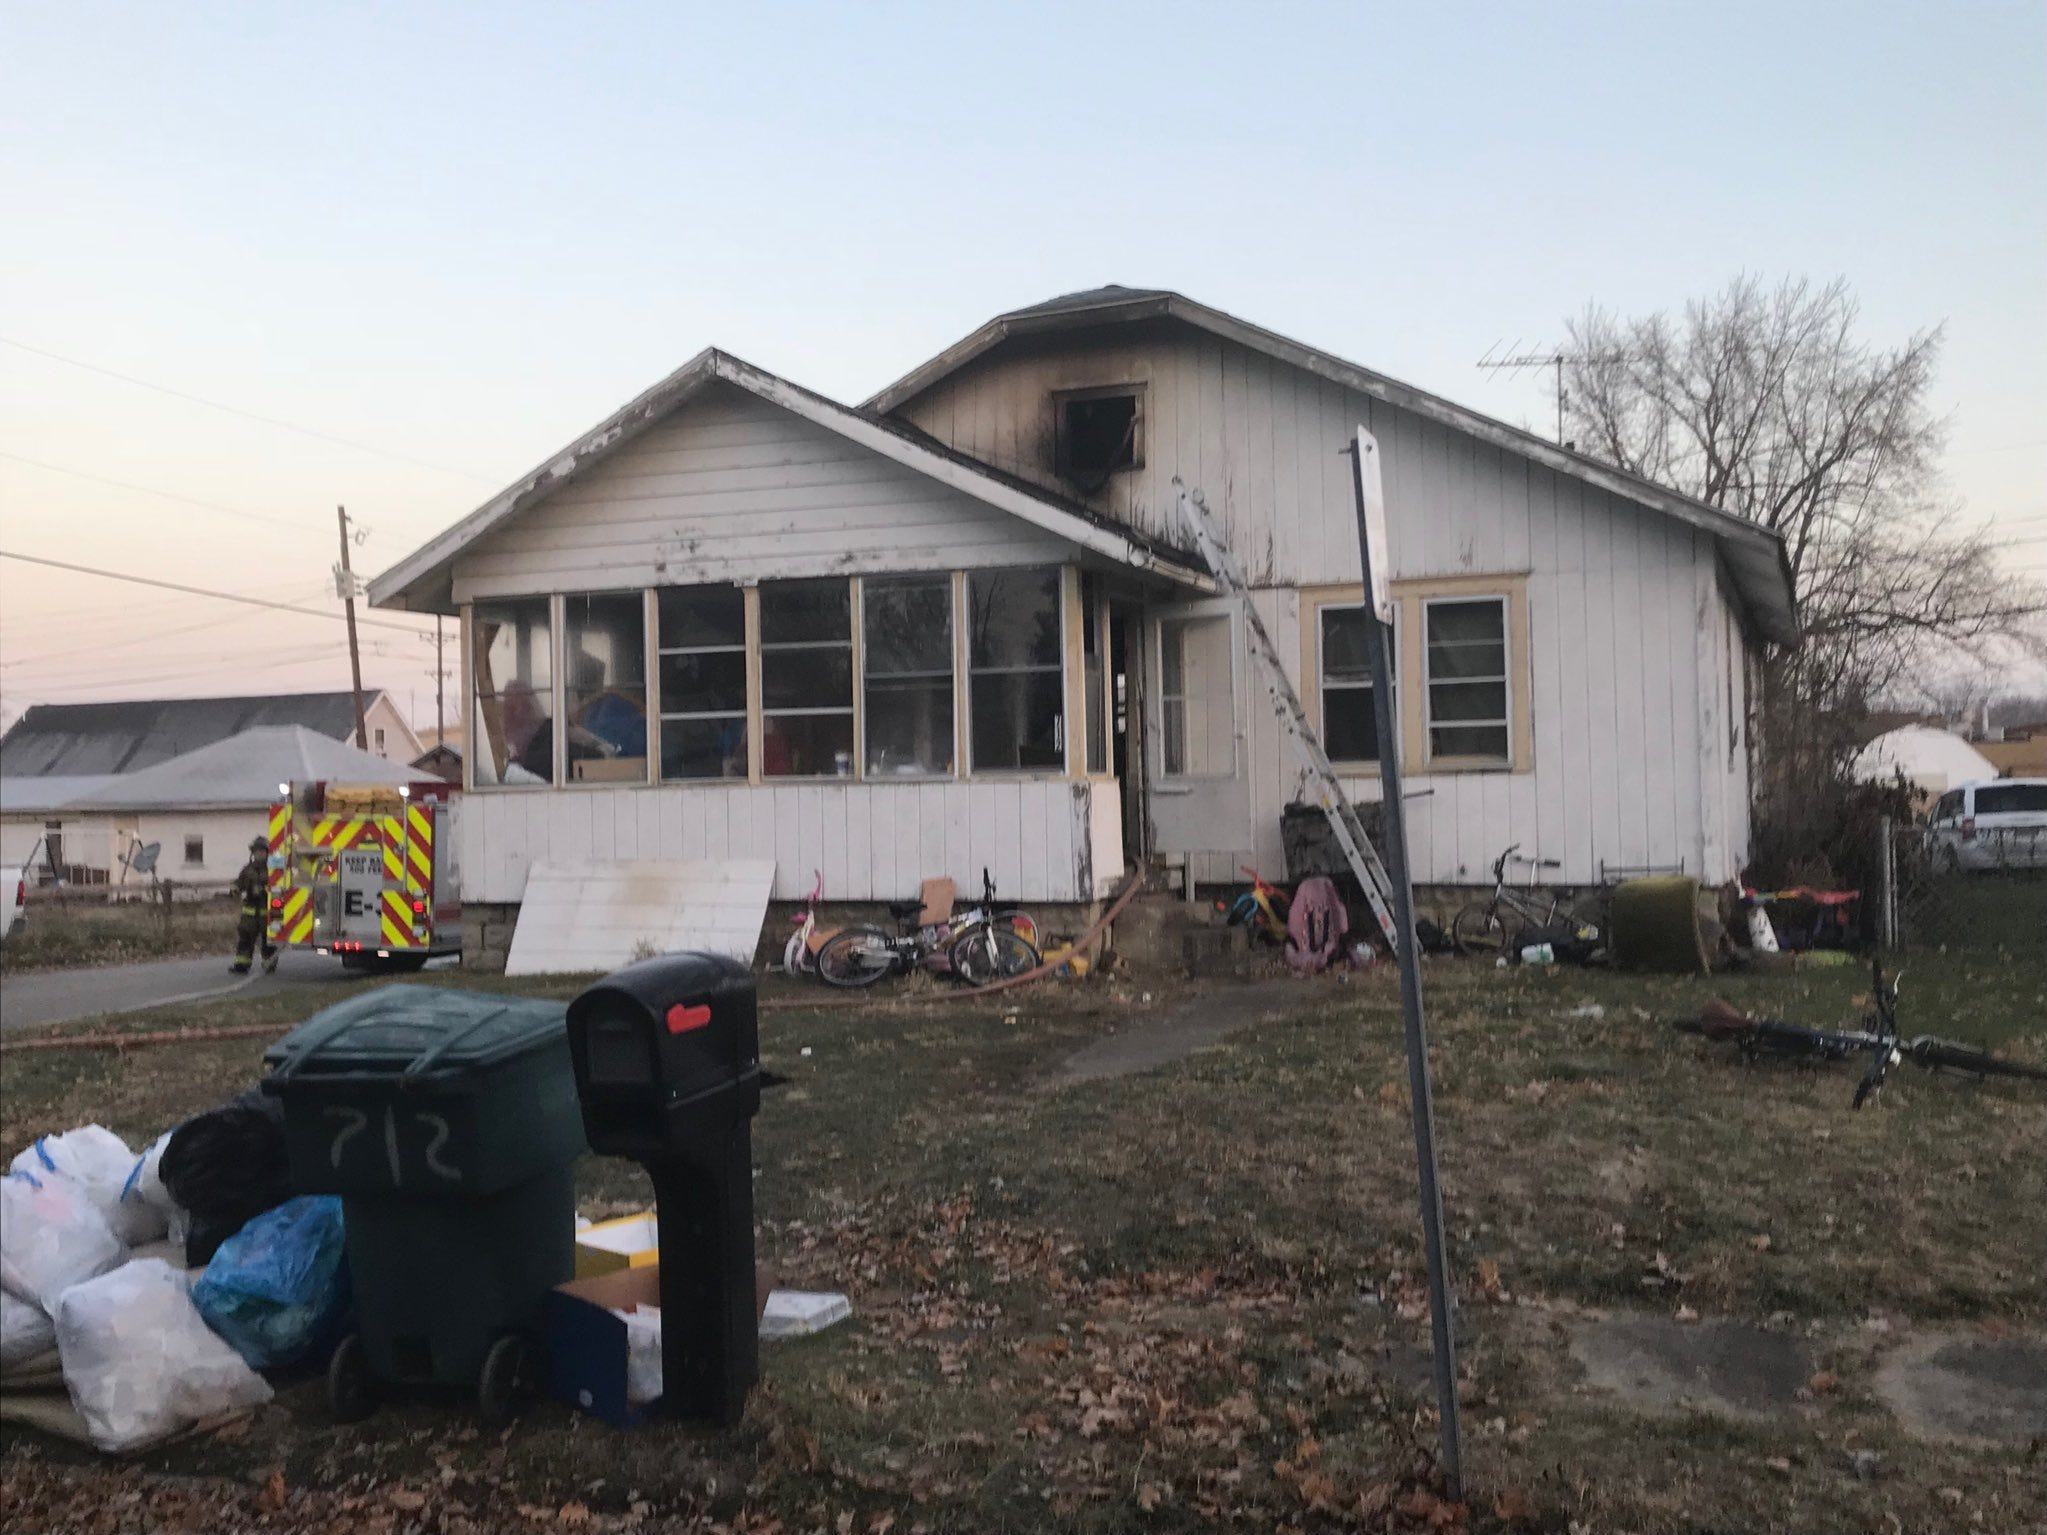 The scene of fatal house fire at 712 W. Fifth St. in Muncie on Wednesday morning.